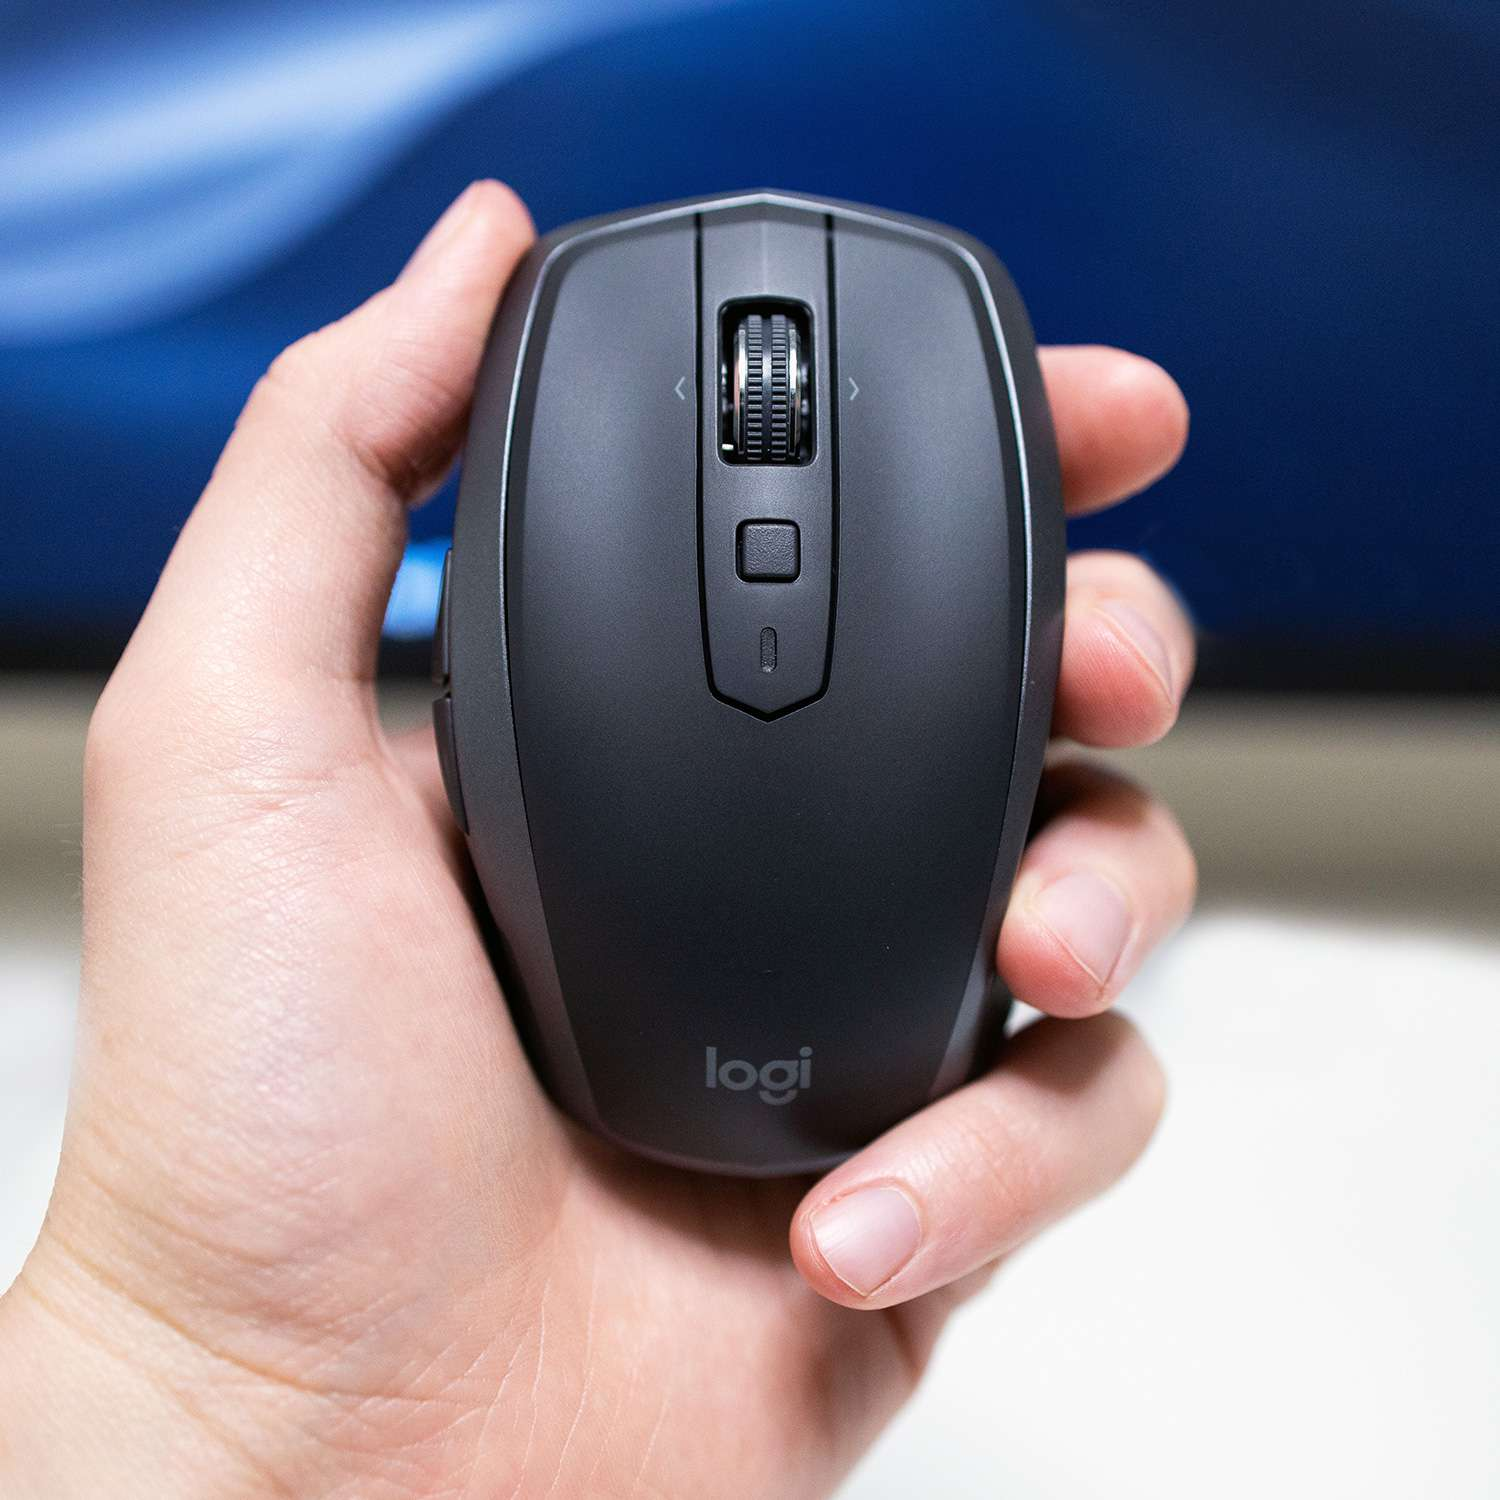 Hainter Gaming Mouse Wireless Rechargeable Mouse Slim Design Optical Mouse Notebook Computer Accessory